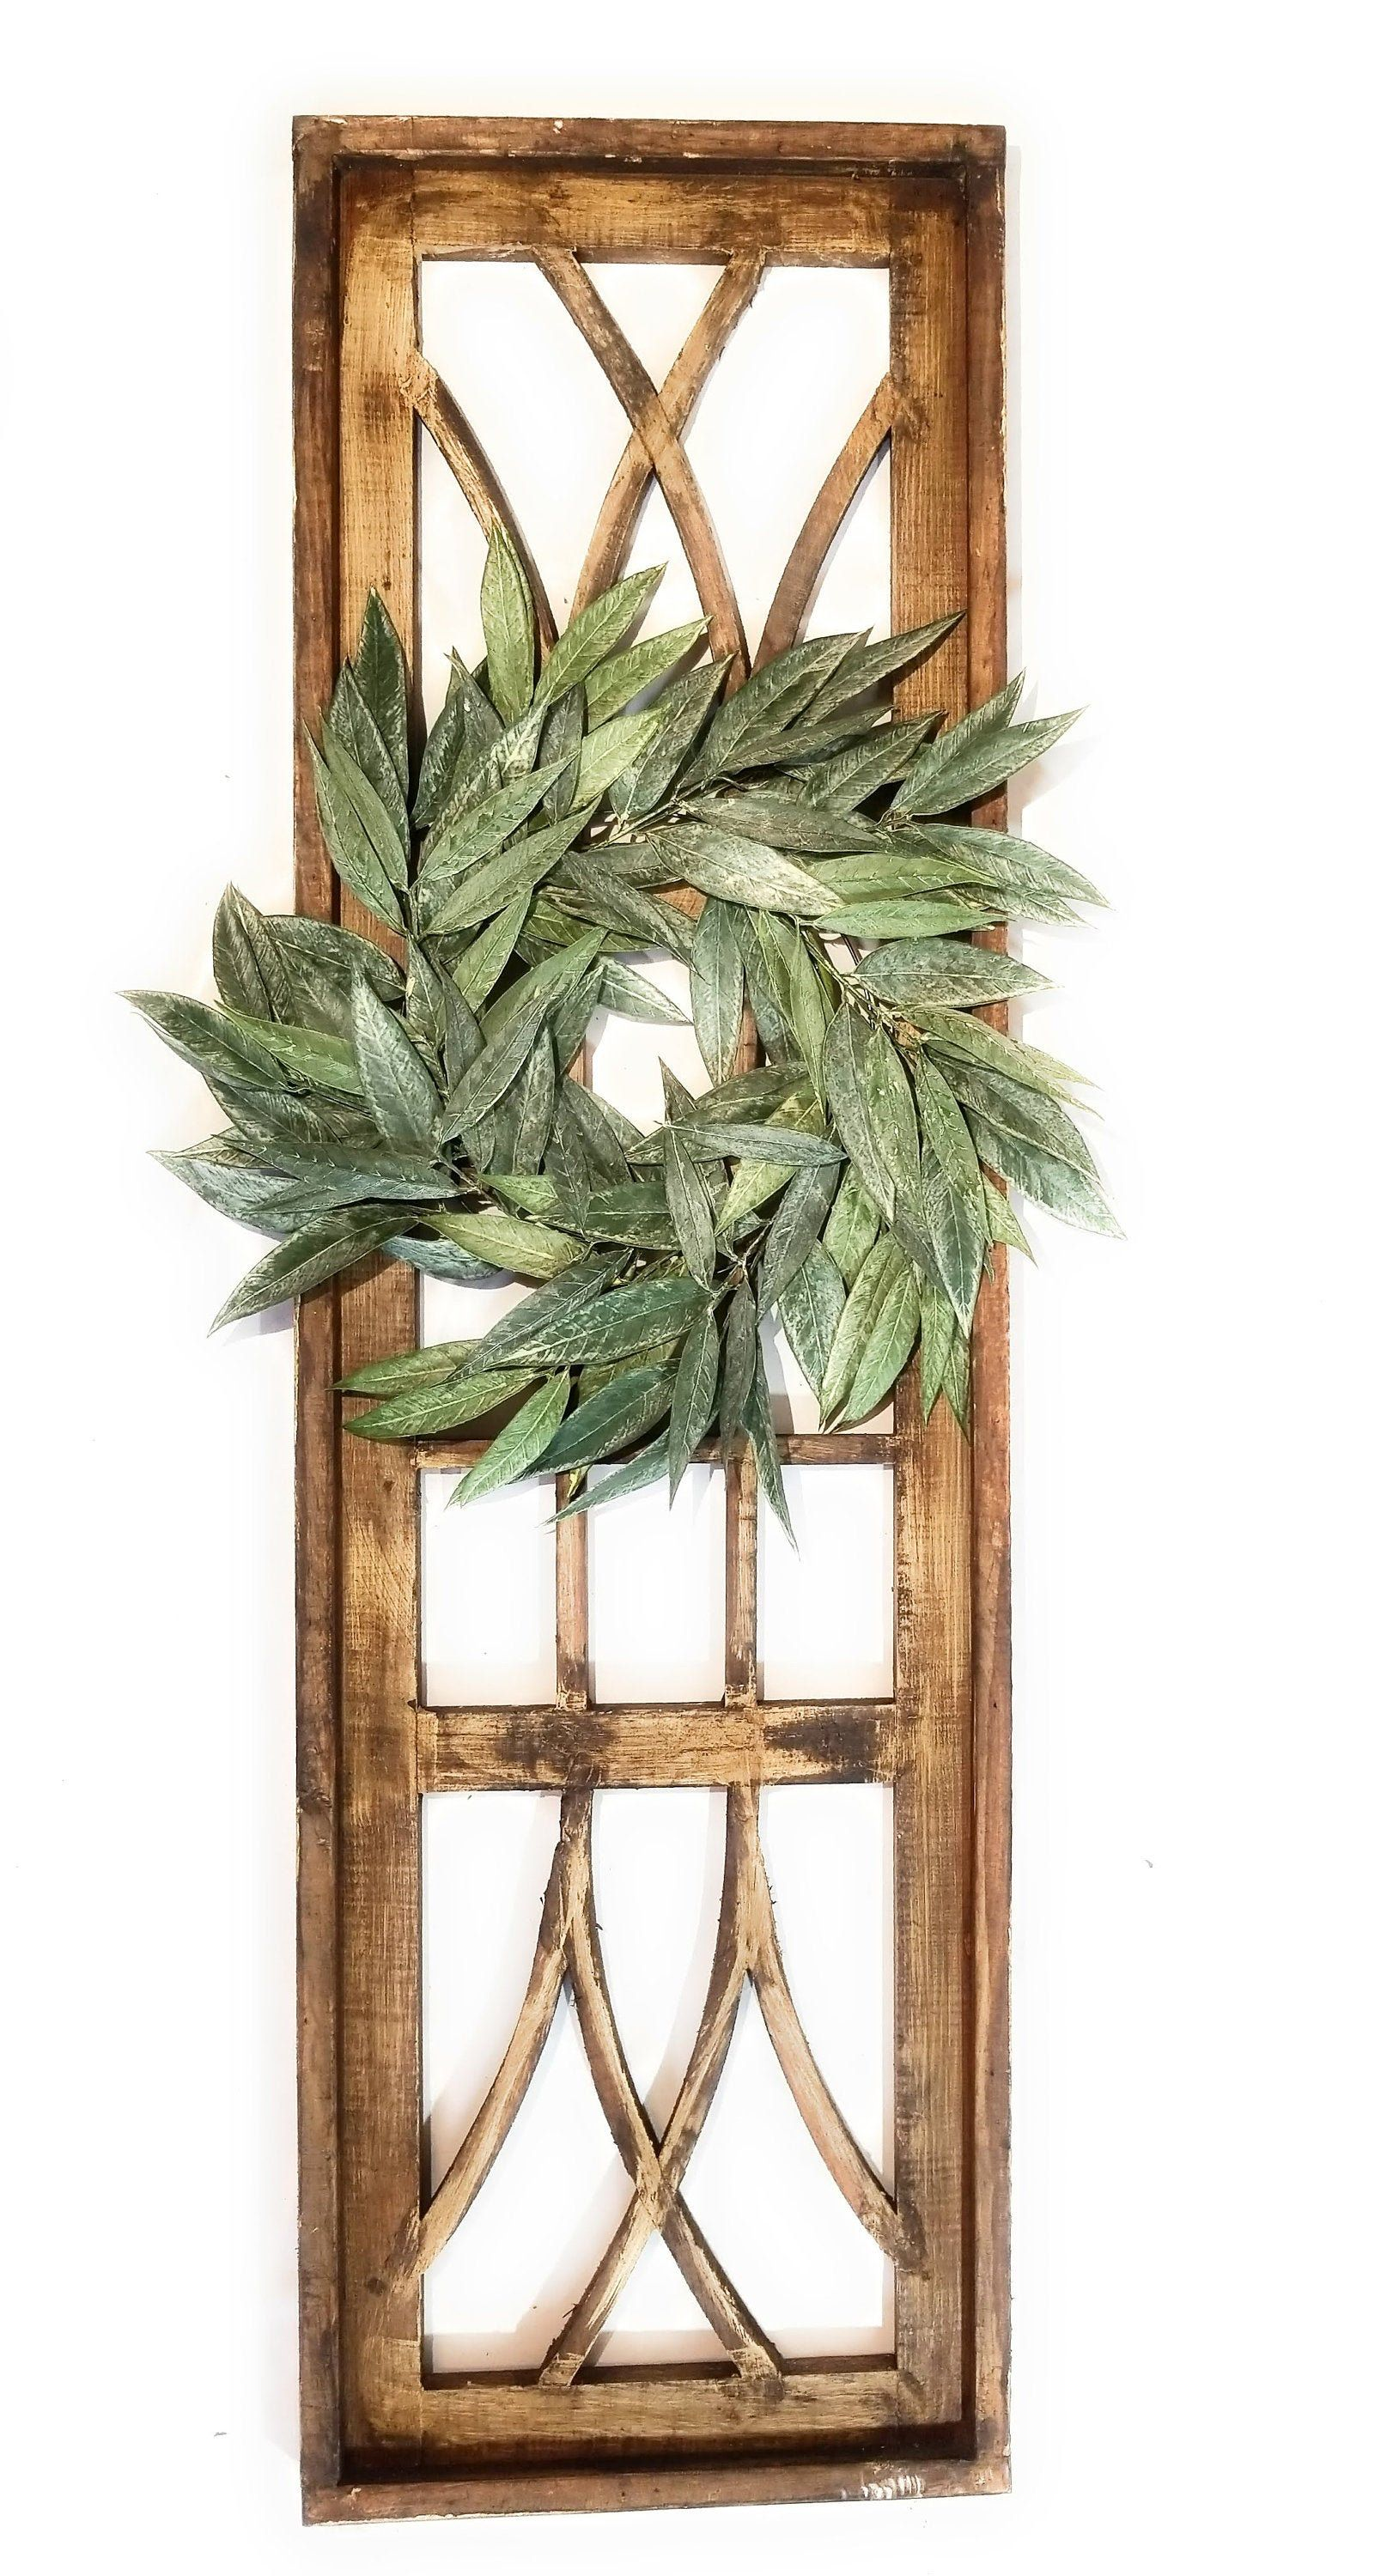 Farmhouse Wooden Wall Window Arch Large Wood Window Frame The Longview Two Sizes 48 And 60 Wreath Option Wood Window Frame Farmhouse Wall Decor Window Wall Decor